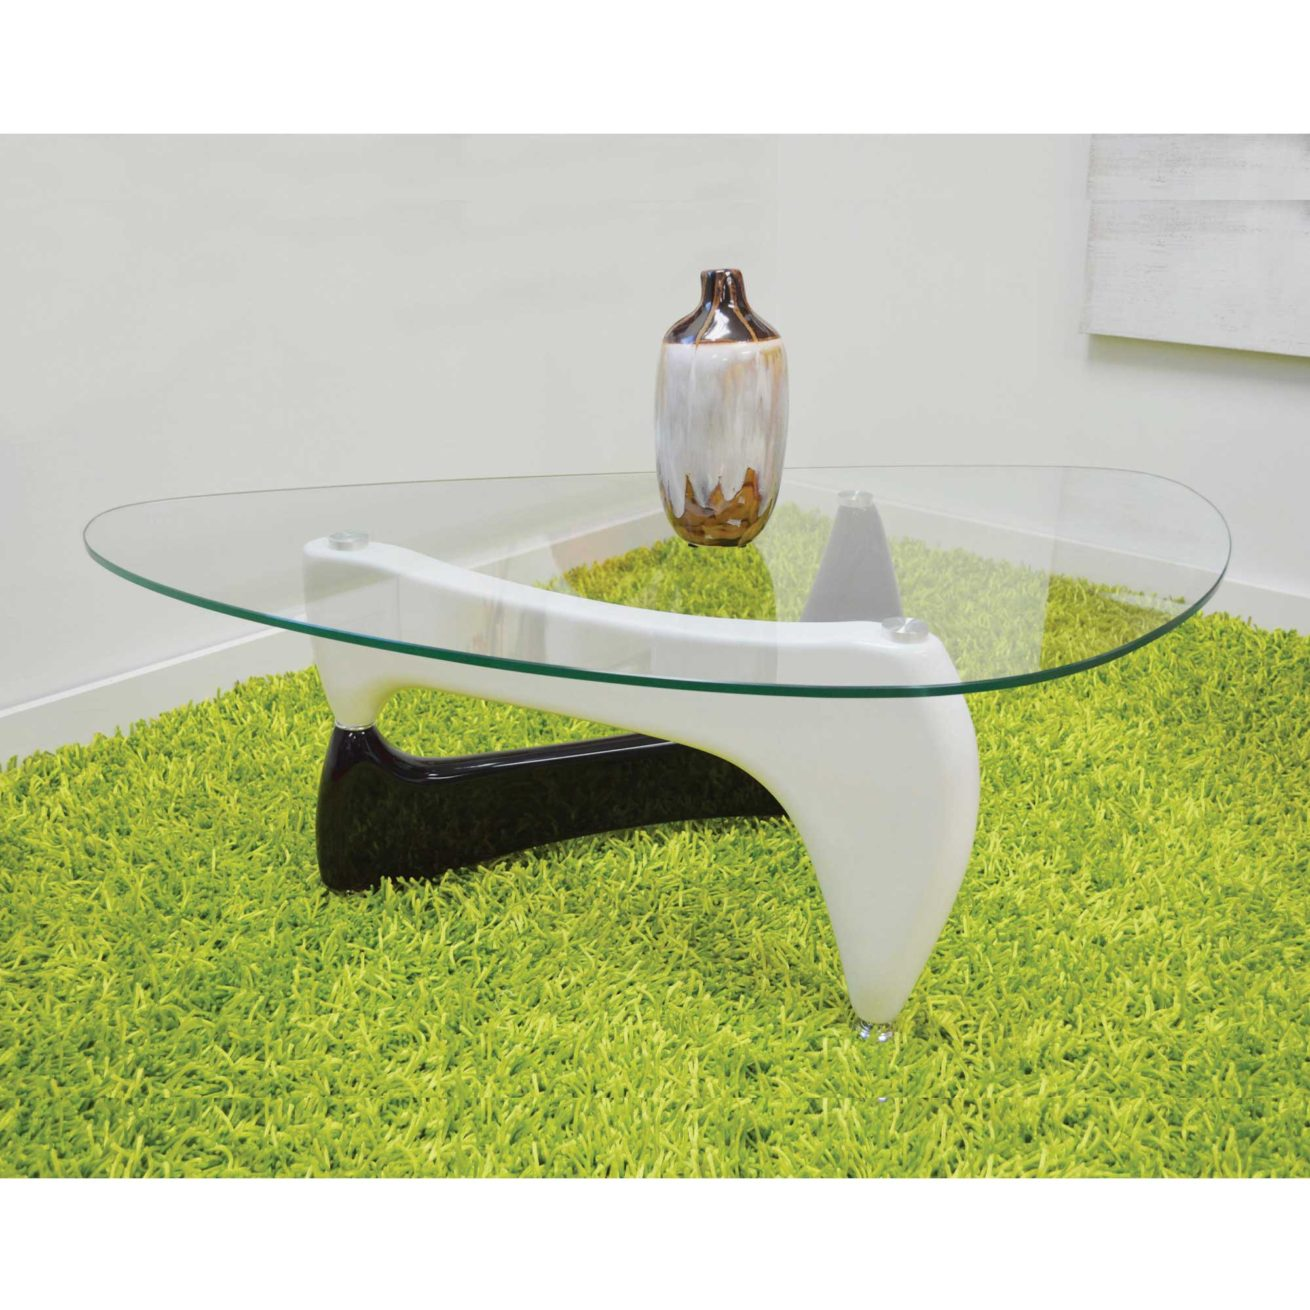 Mermaid coffee table home deco black white coffee table geotapseo Image collections